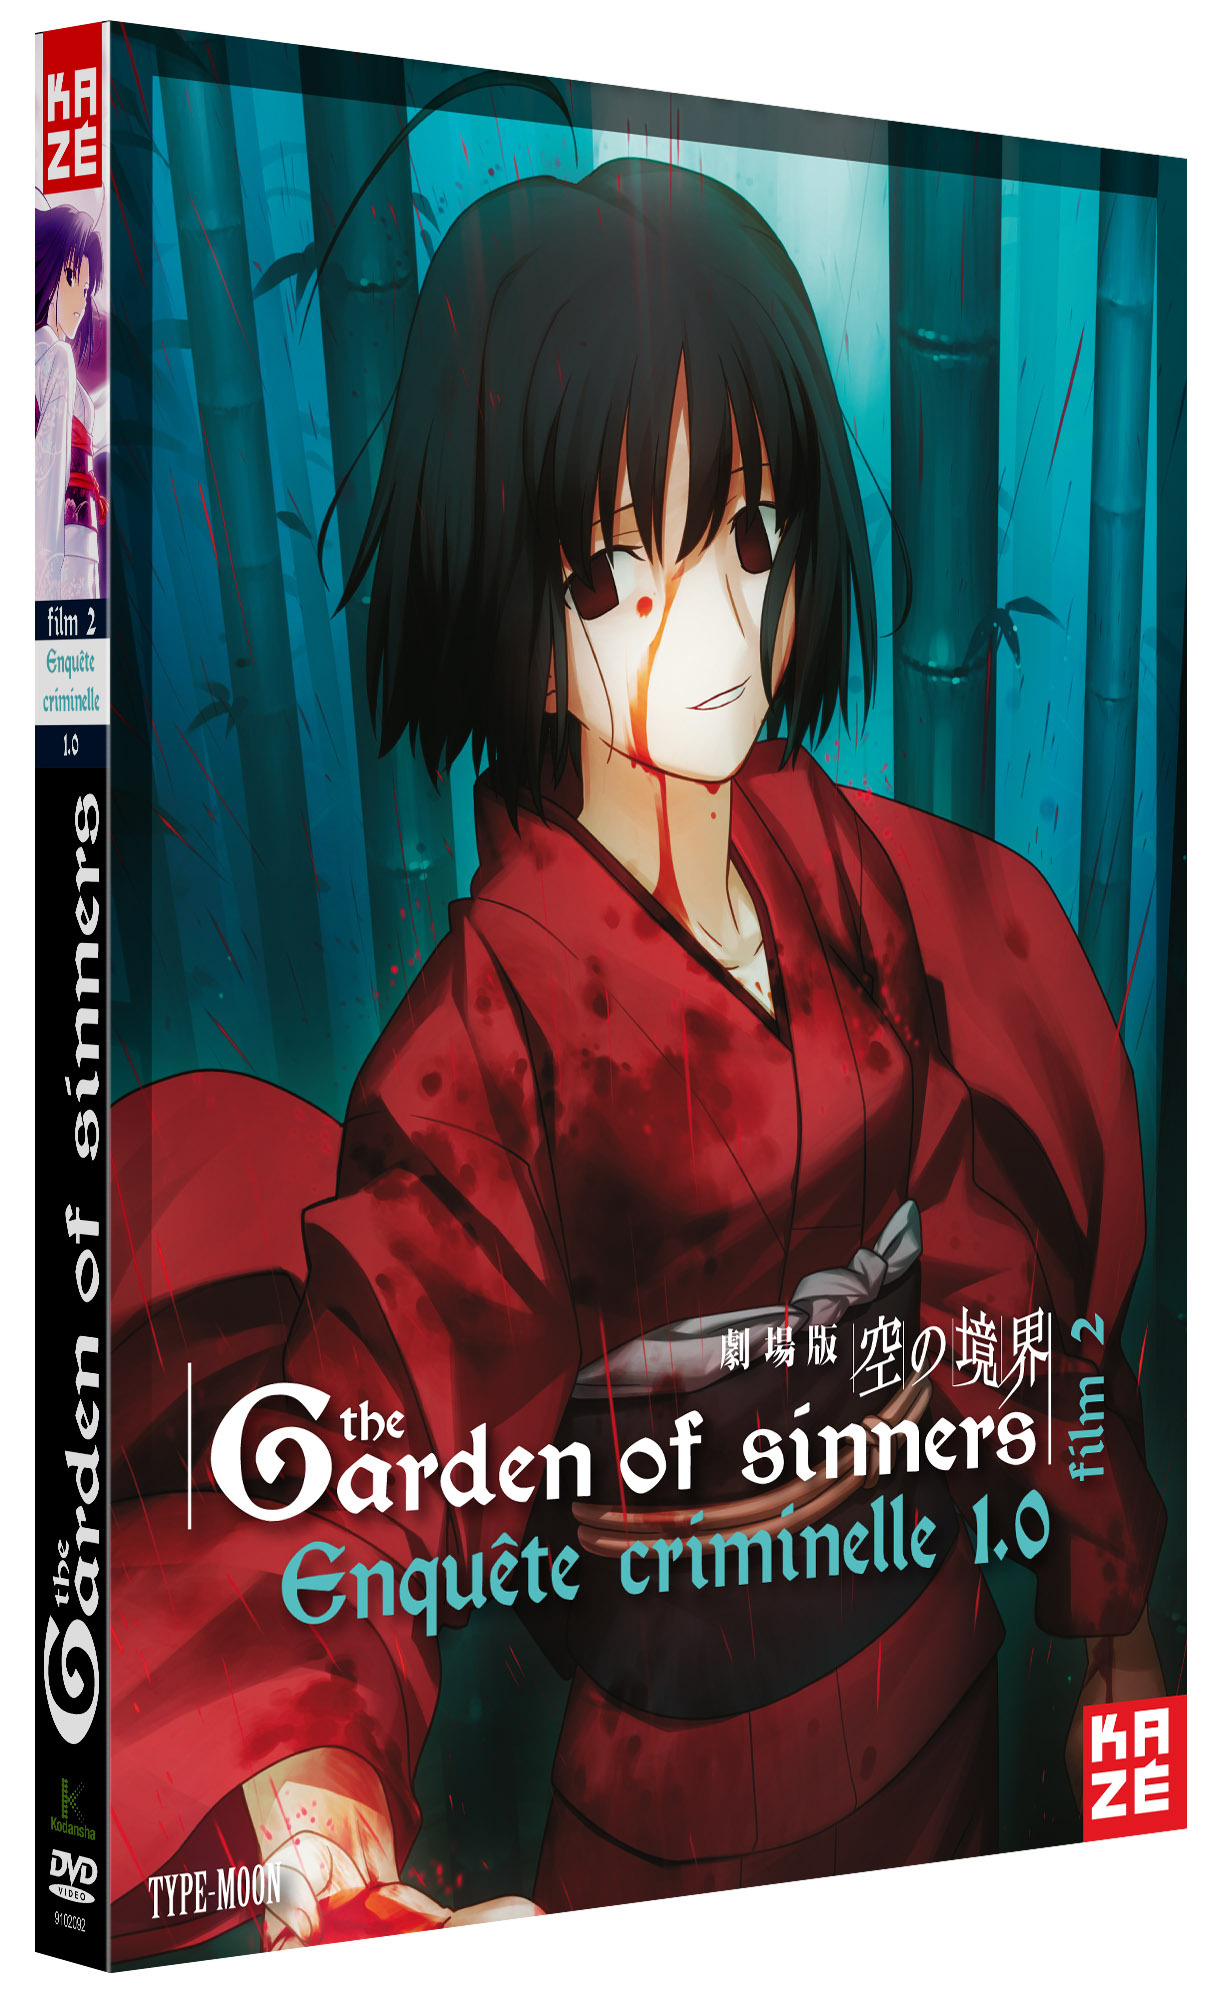 GARDEN OF SINNERS (THE) - FILM 2 - ENQUETE CRIMINELLE 1.0 - DVD